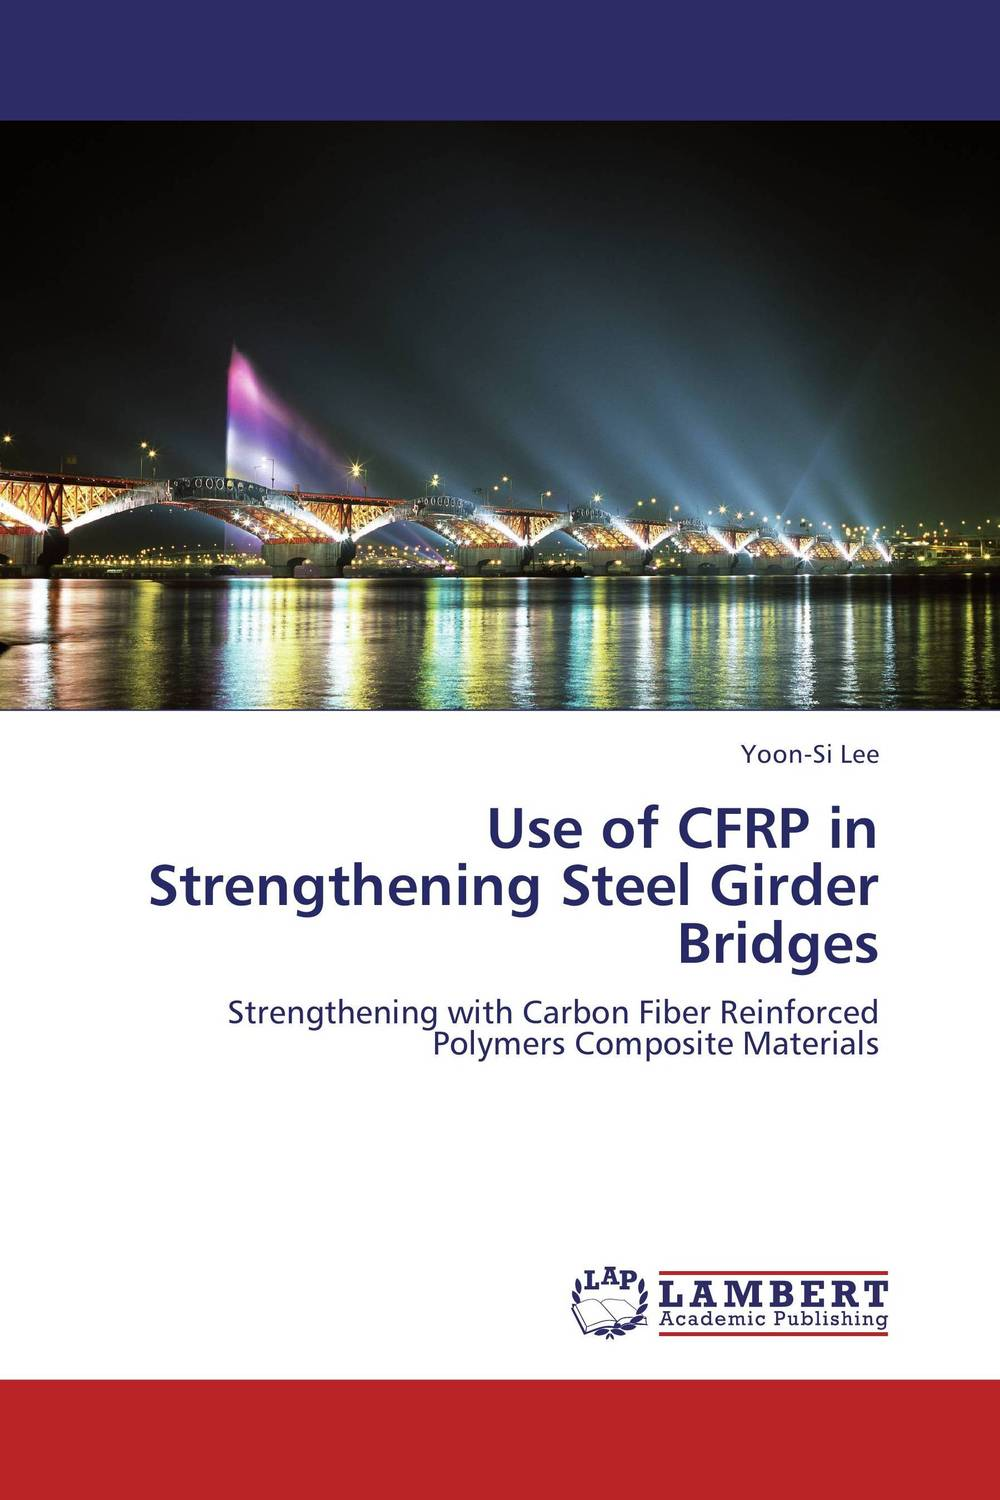 Фото Use of CFRP in Strengthening Steel Girder Bridges cervical cancer in amhara region in ethiopia